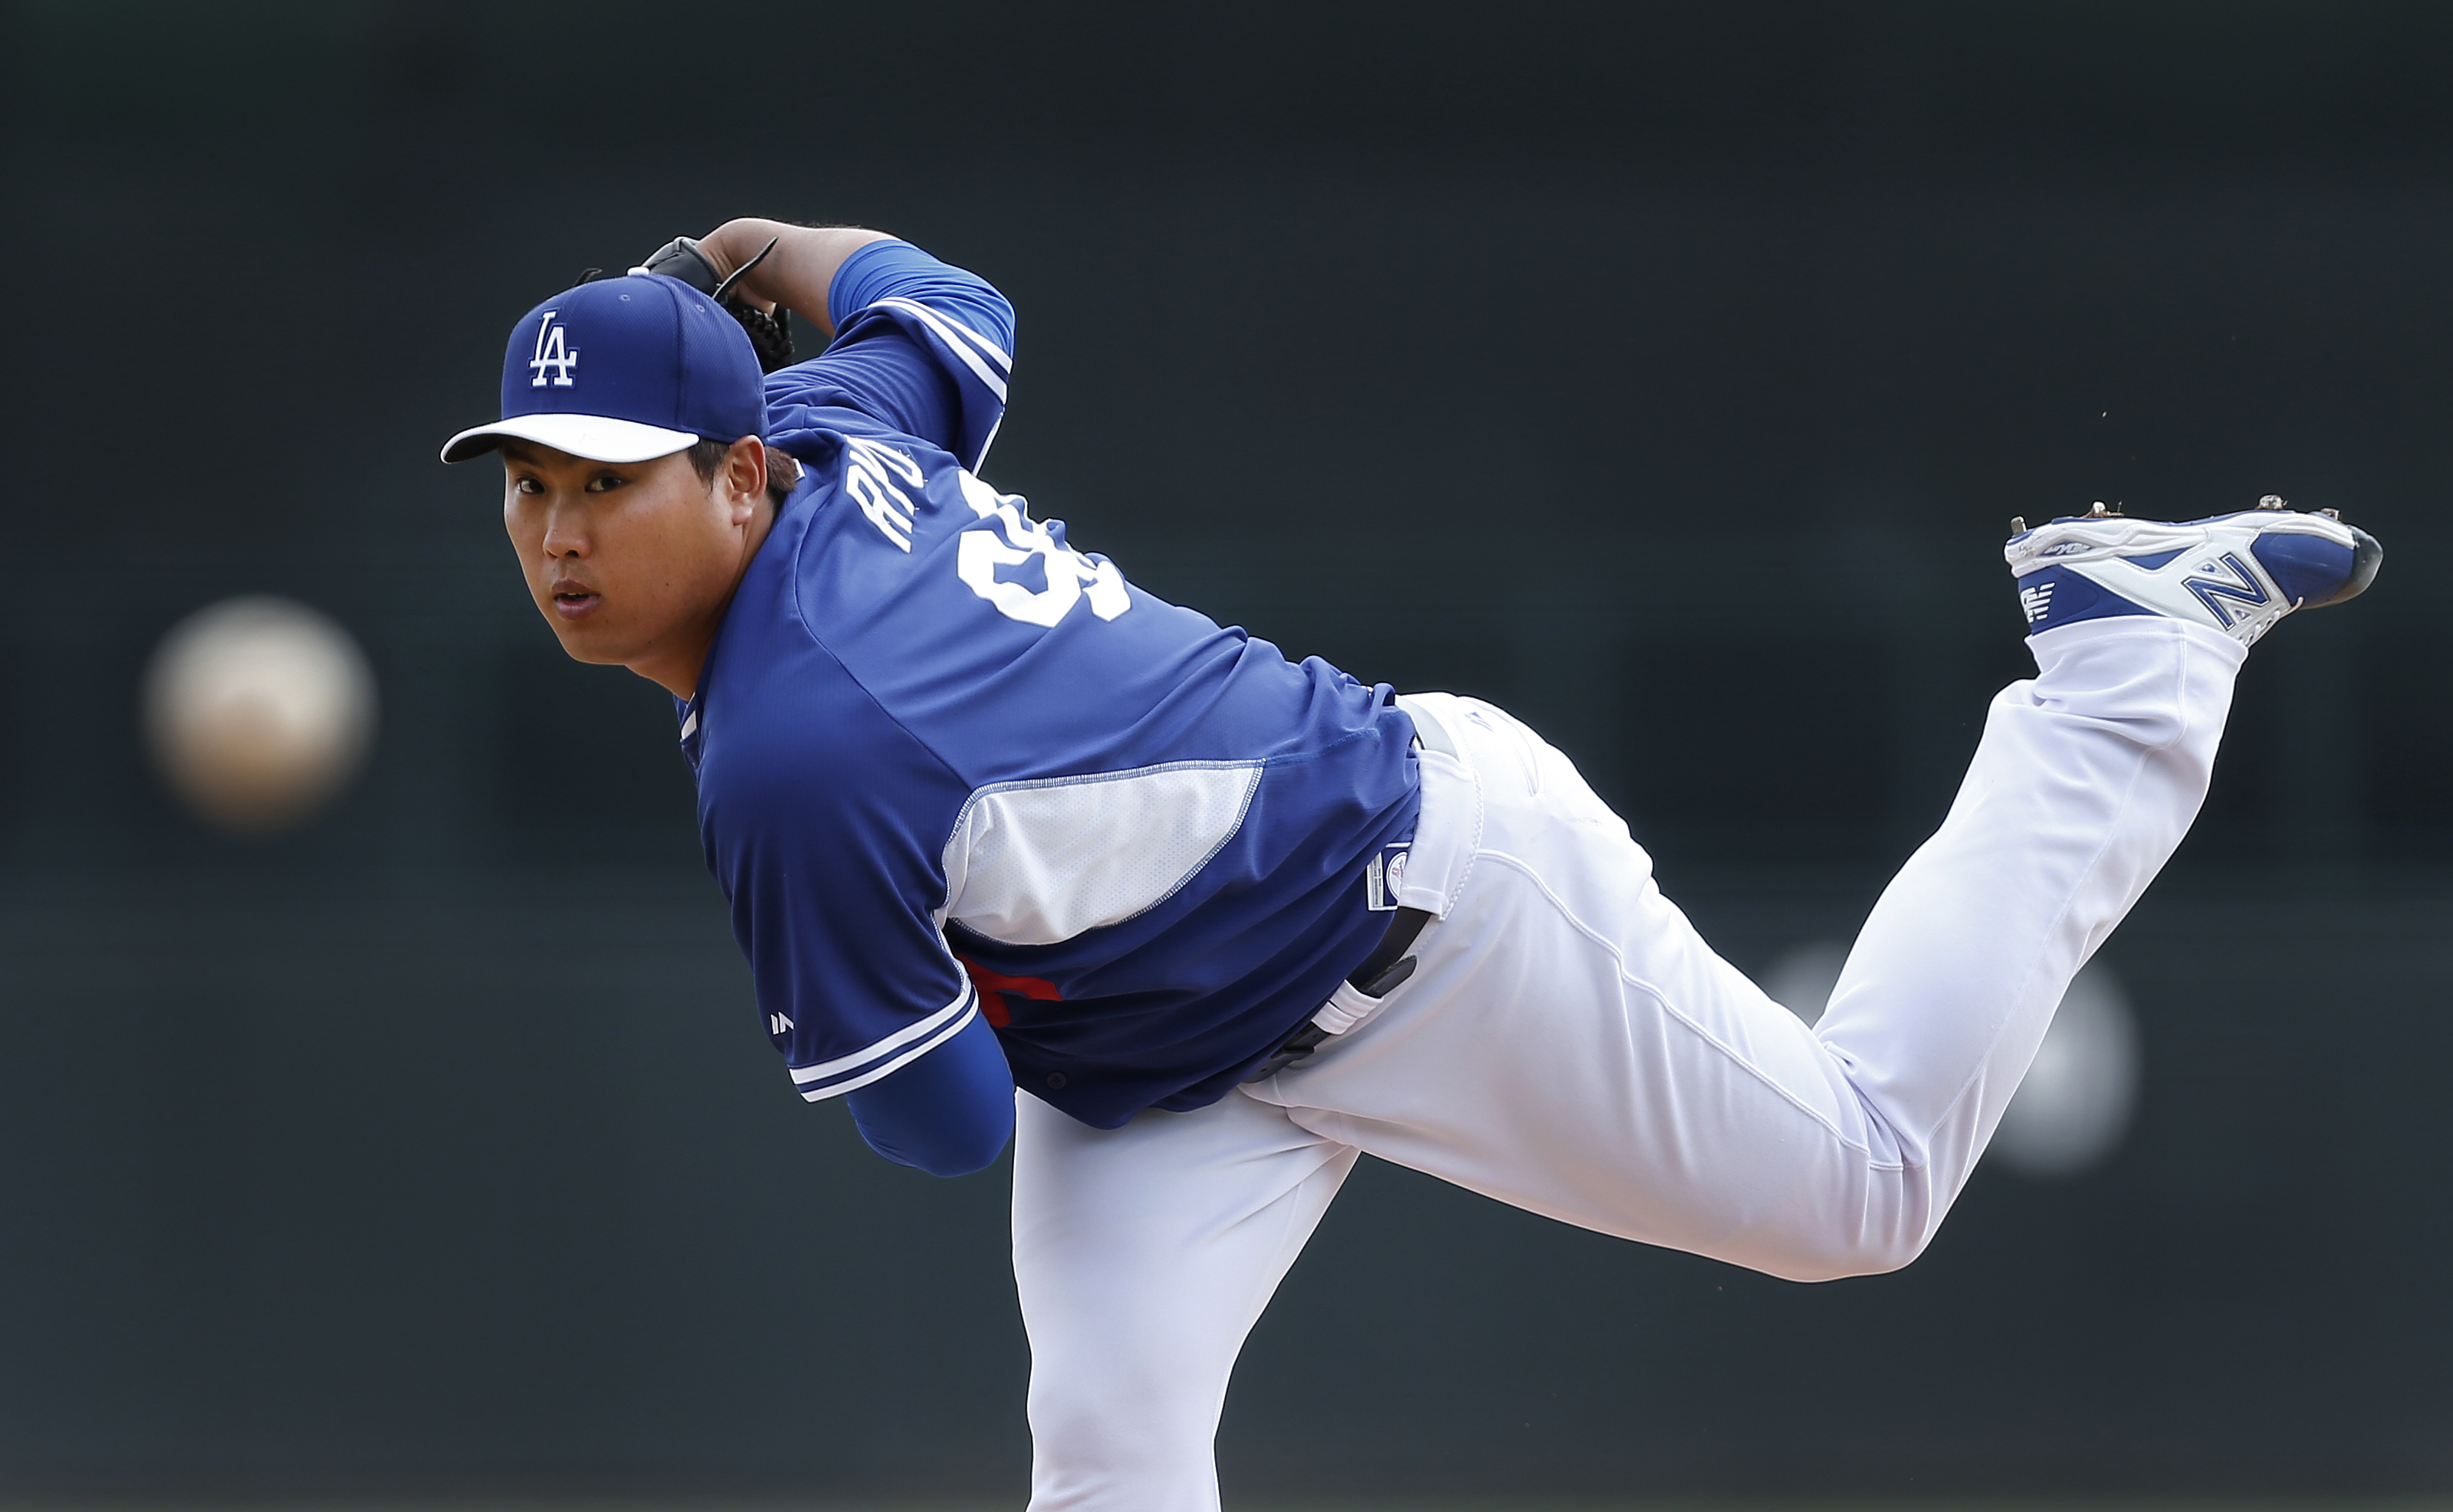 Los Angeles Dodgers pitcher Ryu Hyun-Jin, of South Korea, throws to a Chicago White Sox batter in the first inning of an exhibition baseball game in Glendale, Ariz., Friday, Feb. 28, 2014. (AP Photo/Paul Sancya)